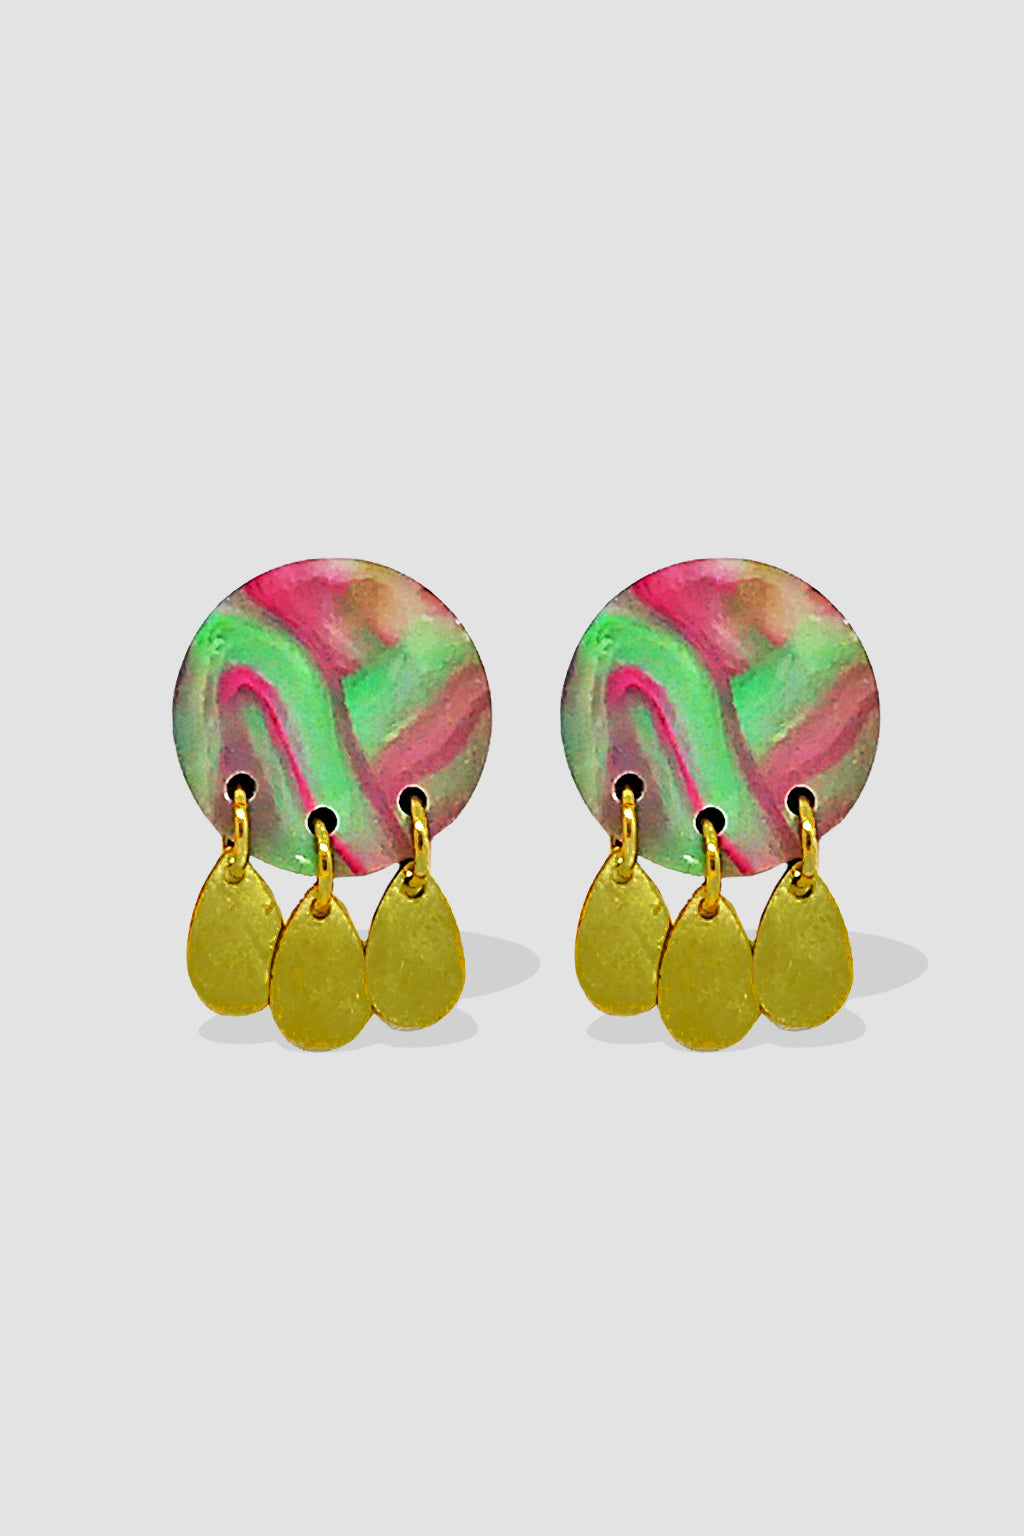 Down The Rabbit Hole-Stud Dangle Earring - Pink Green Gold-Mott and Mulberry